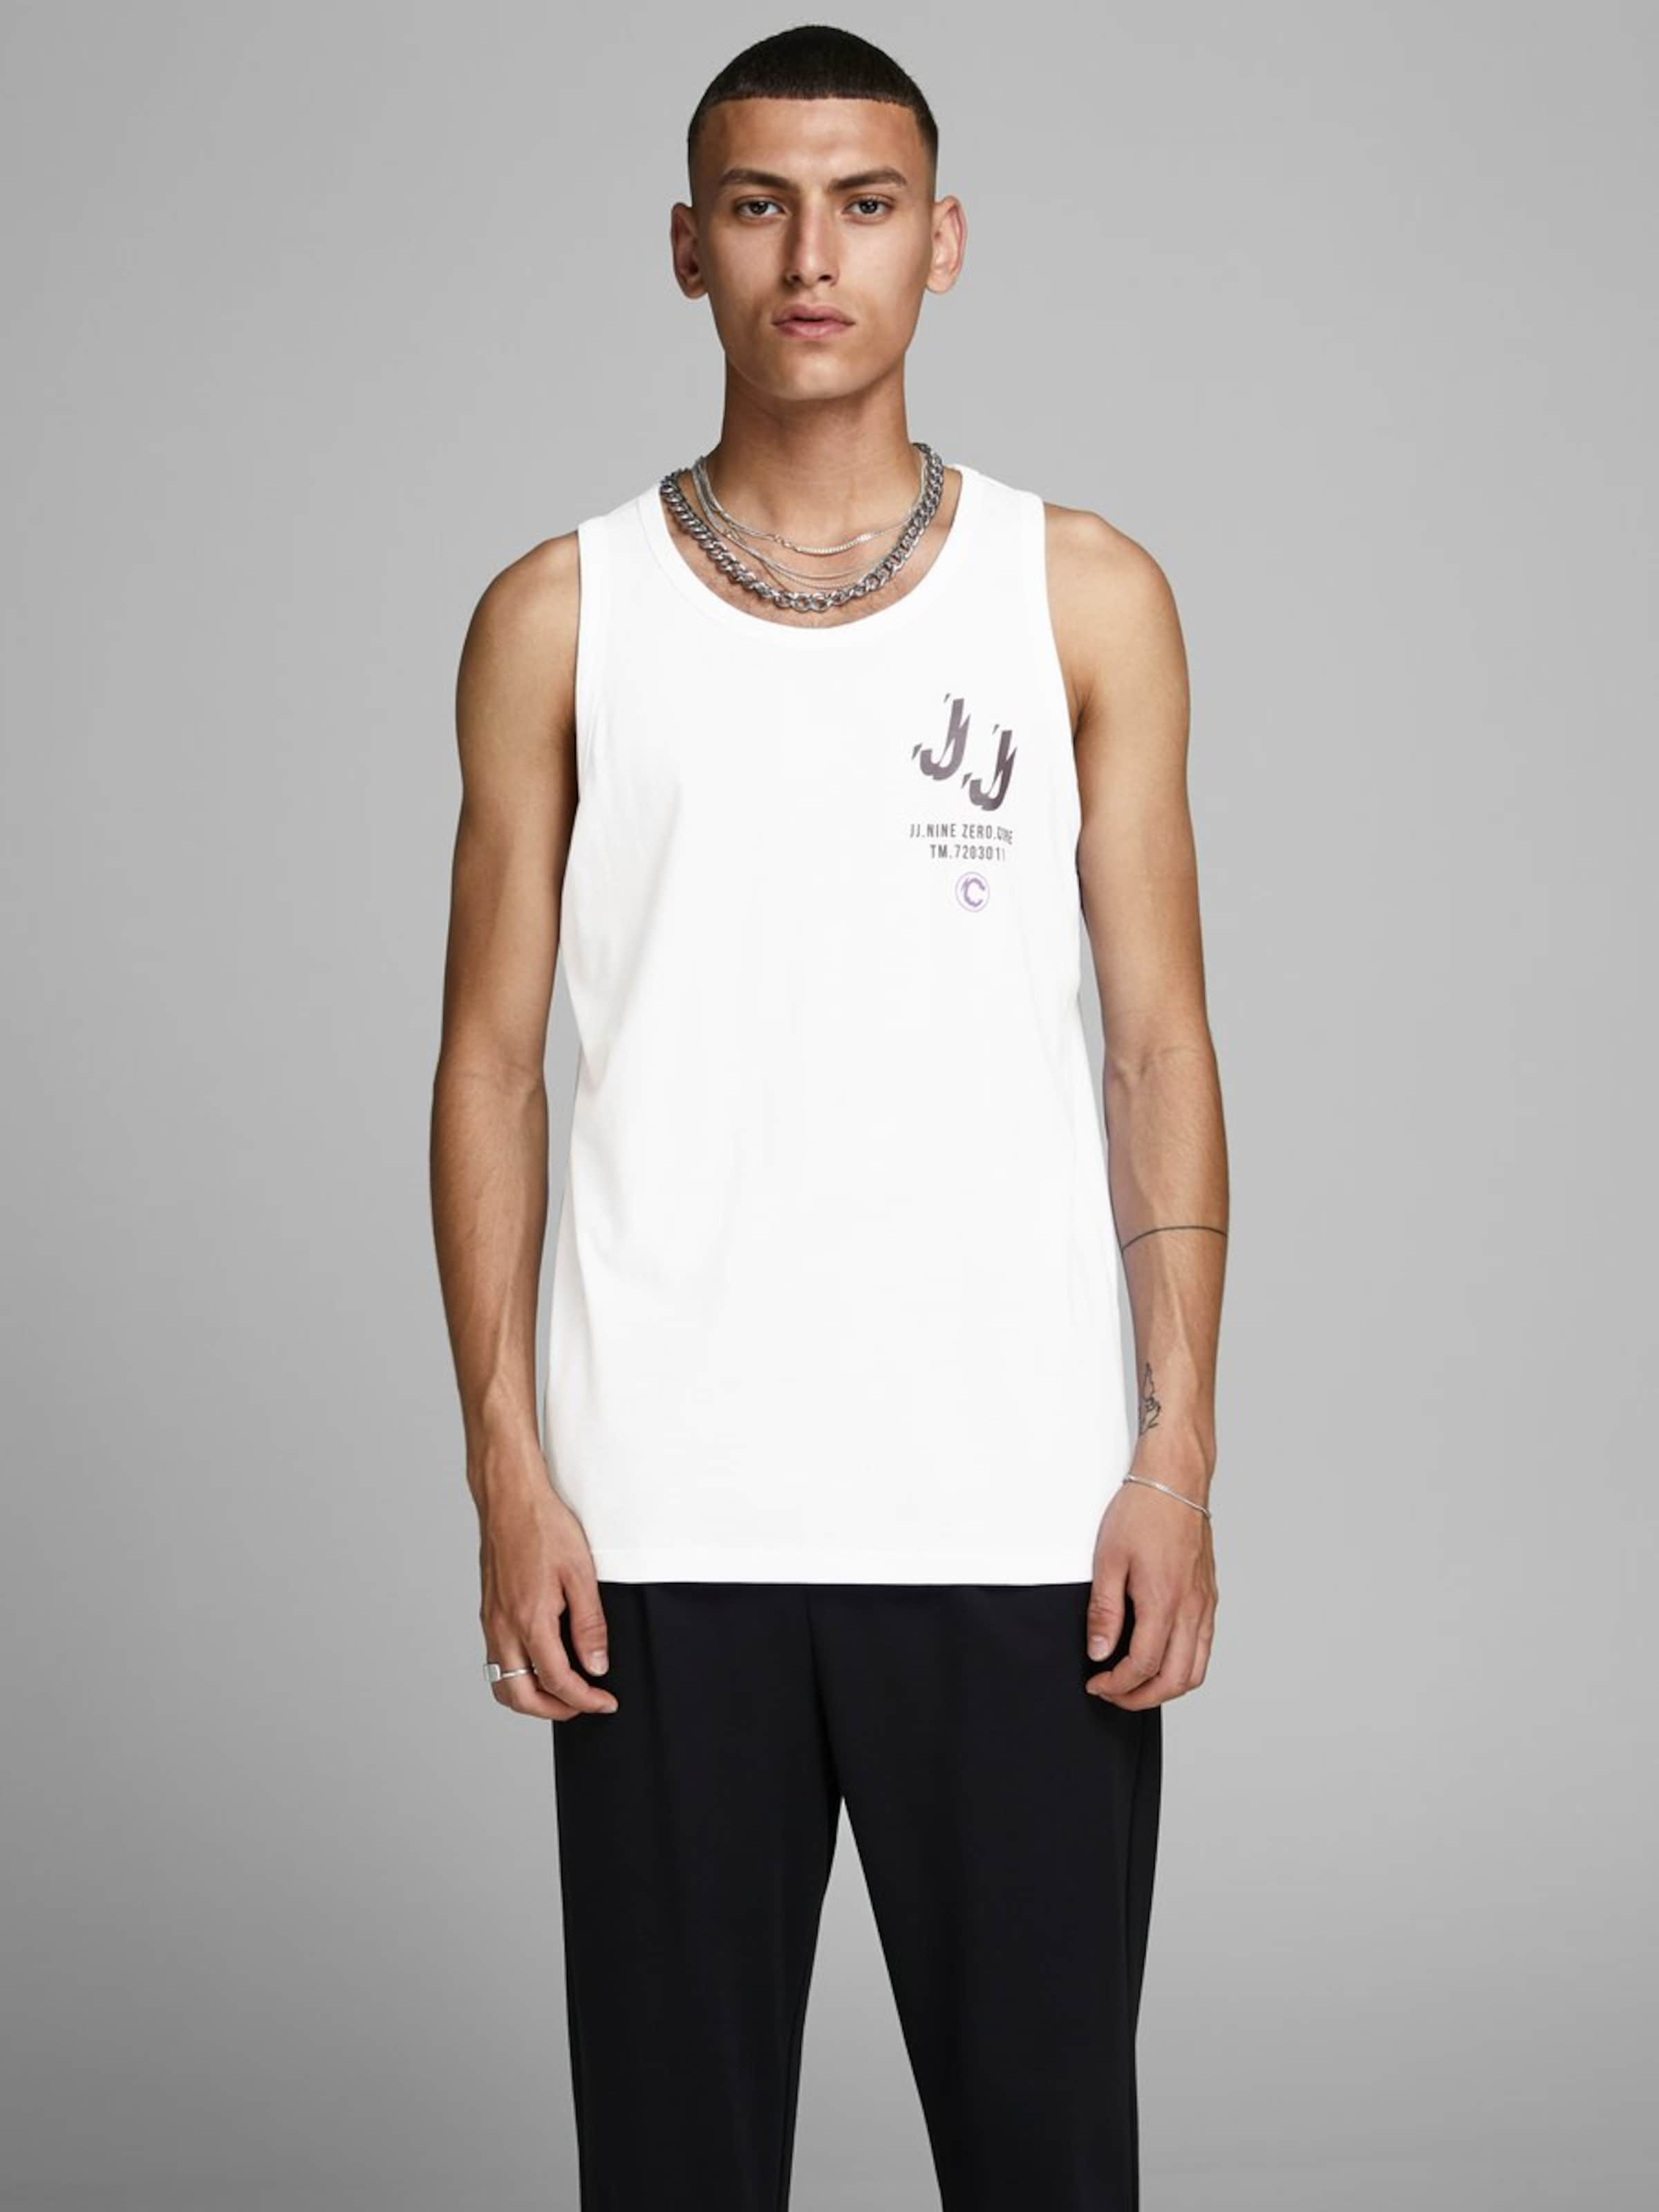 Jackamp; shirt En Blanc PourpreNoir Jones T LAR354j